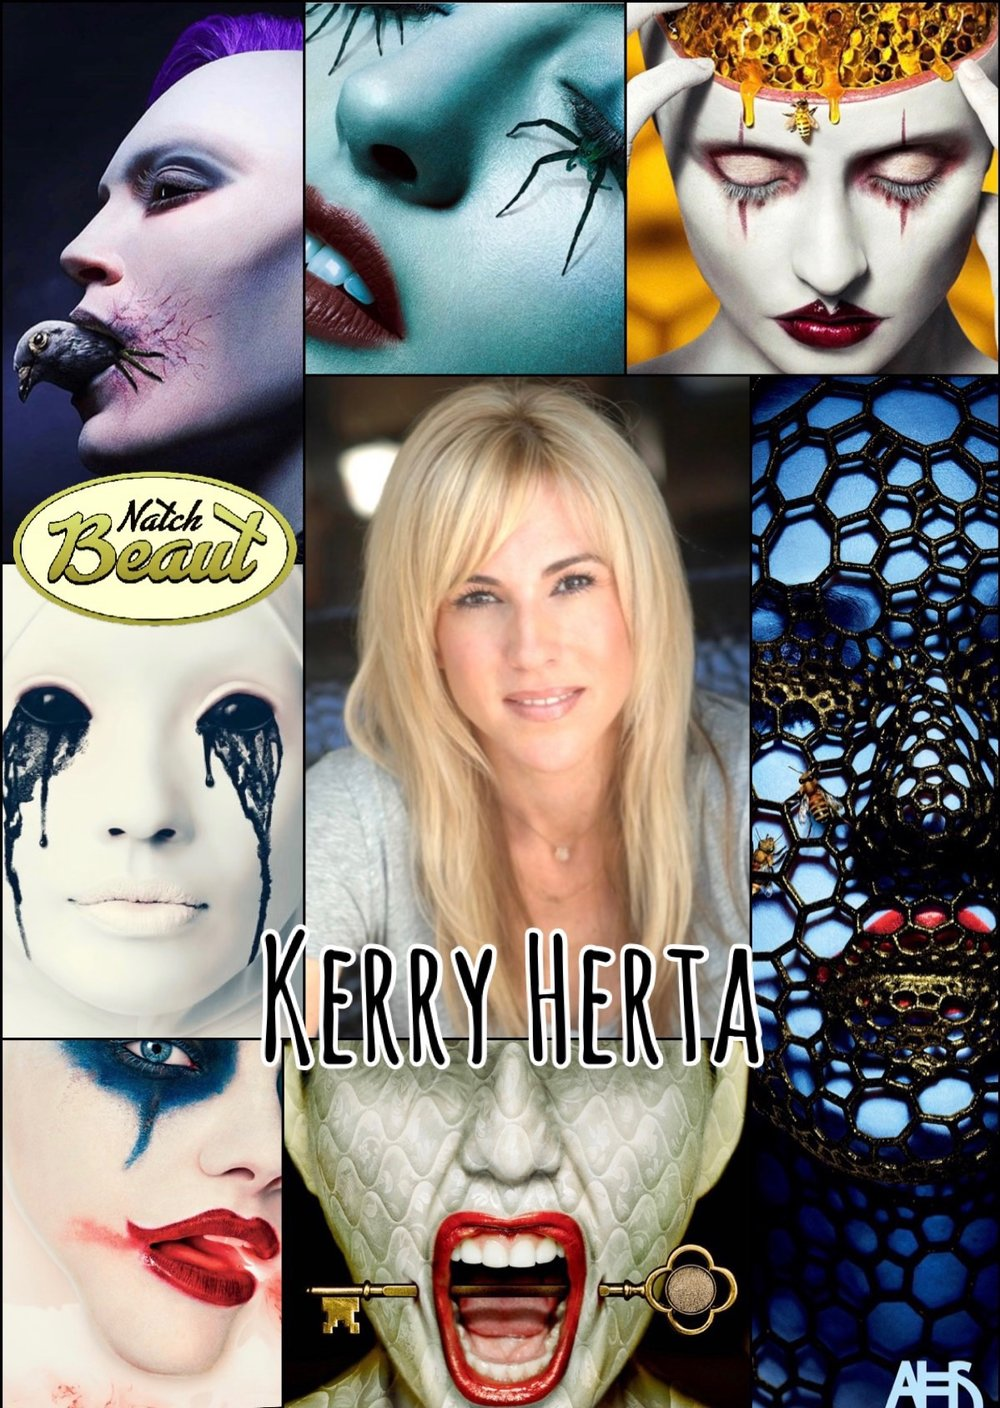 Special effects makeup artist Kerry Herta and some of her looks for American Horror Story ads..